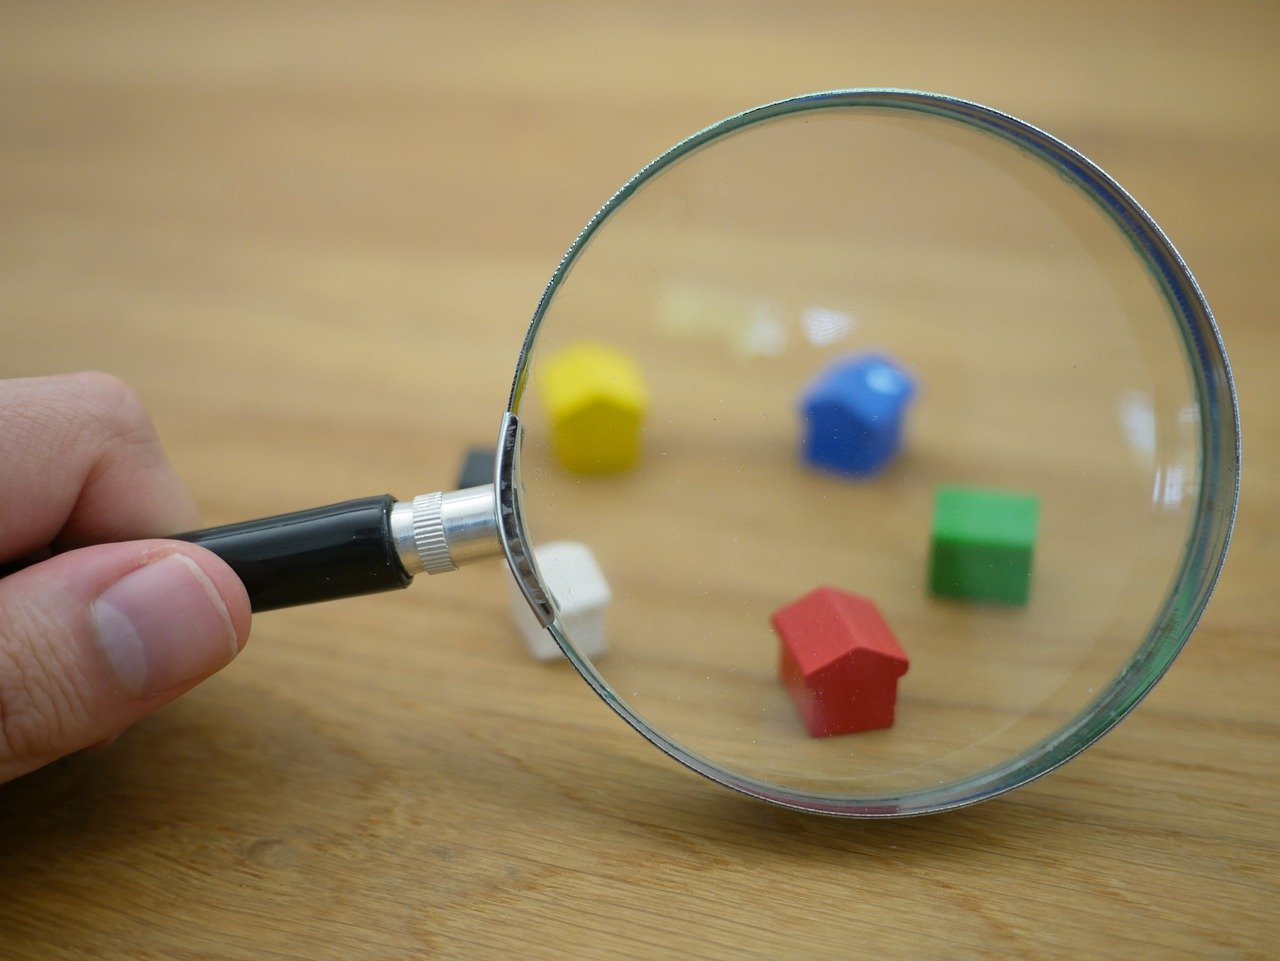 Hand holding magnifying glass in front of Monopoly house pieces.